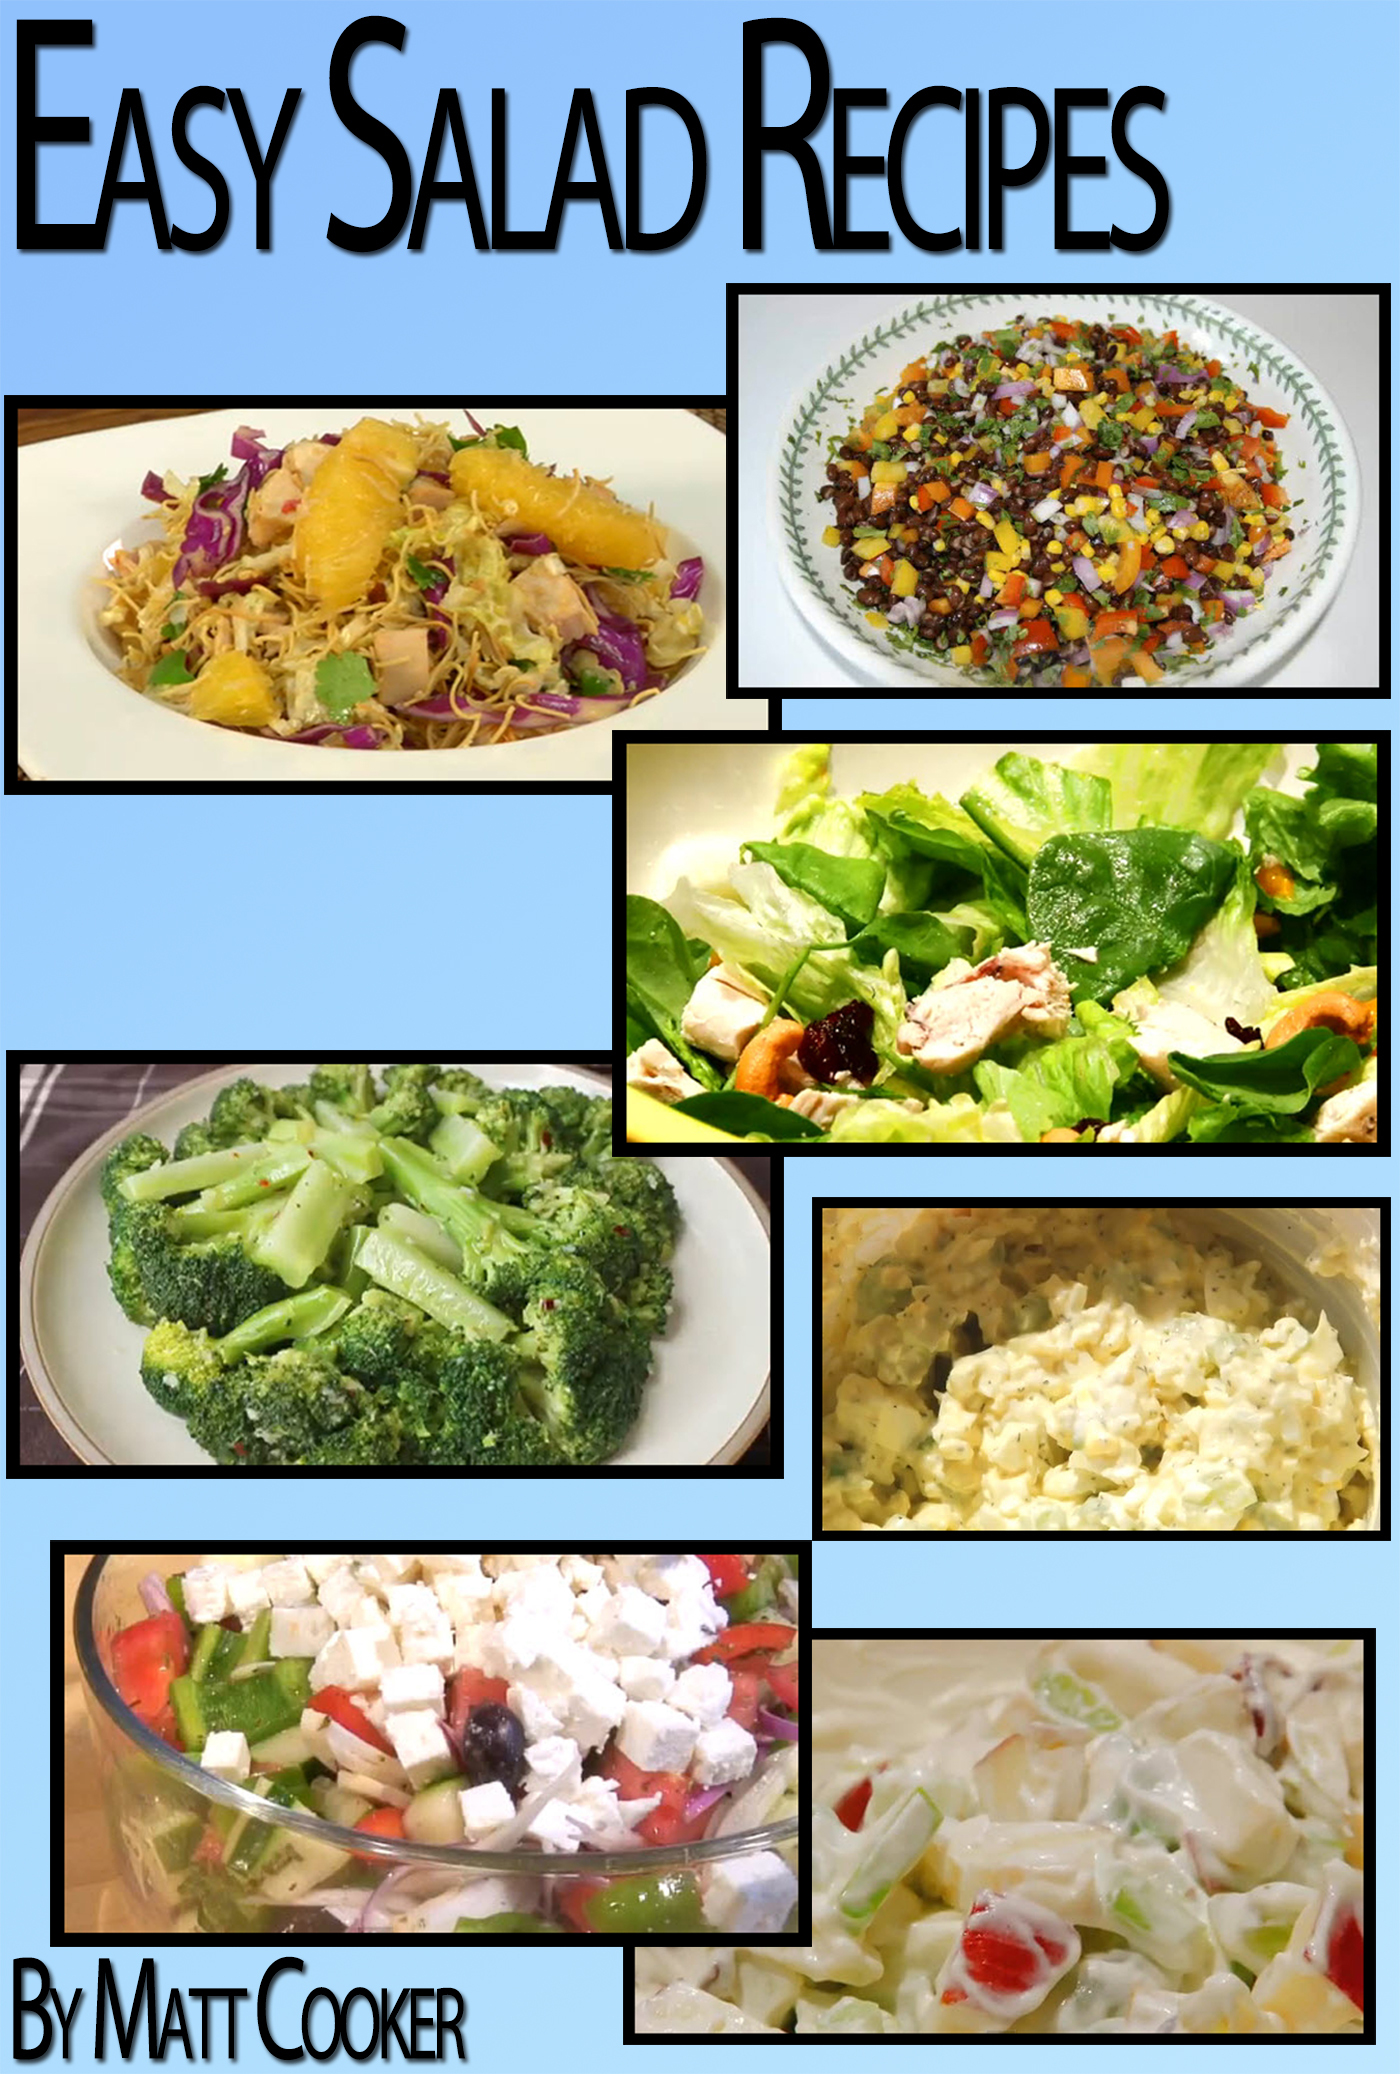 Easy Salad Recipes To Impress Your Family (Step by Step Guide with Colorful Pictures)